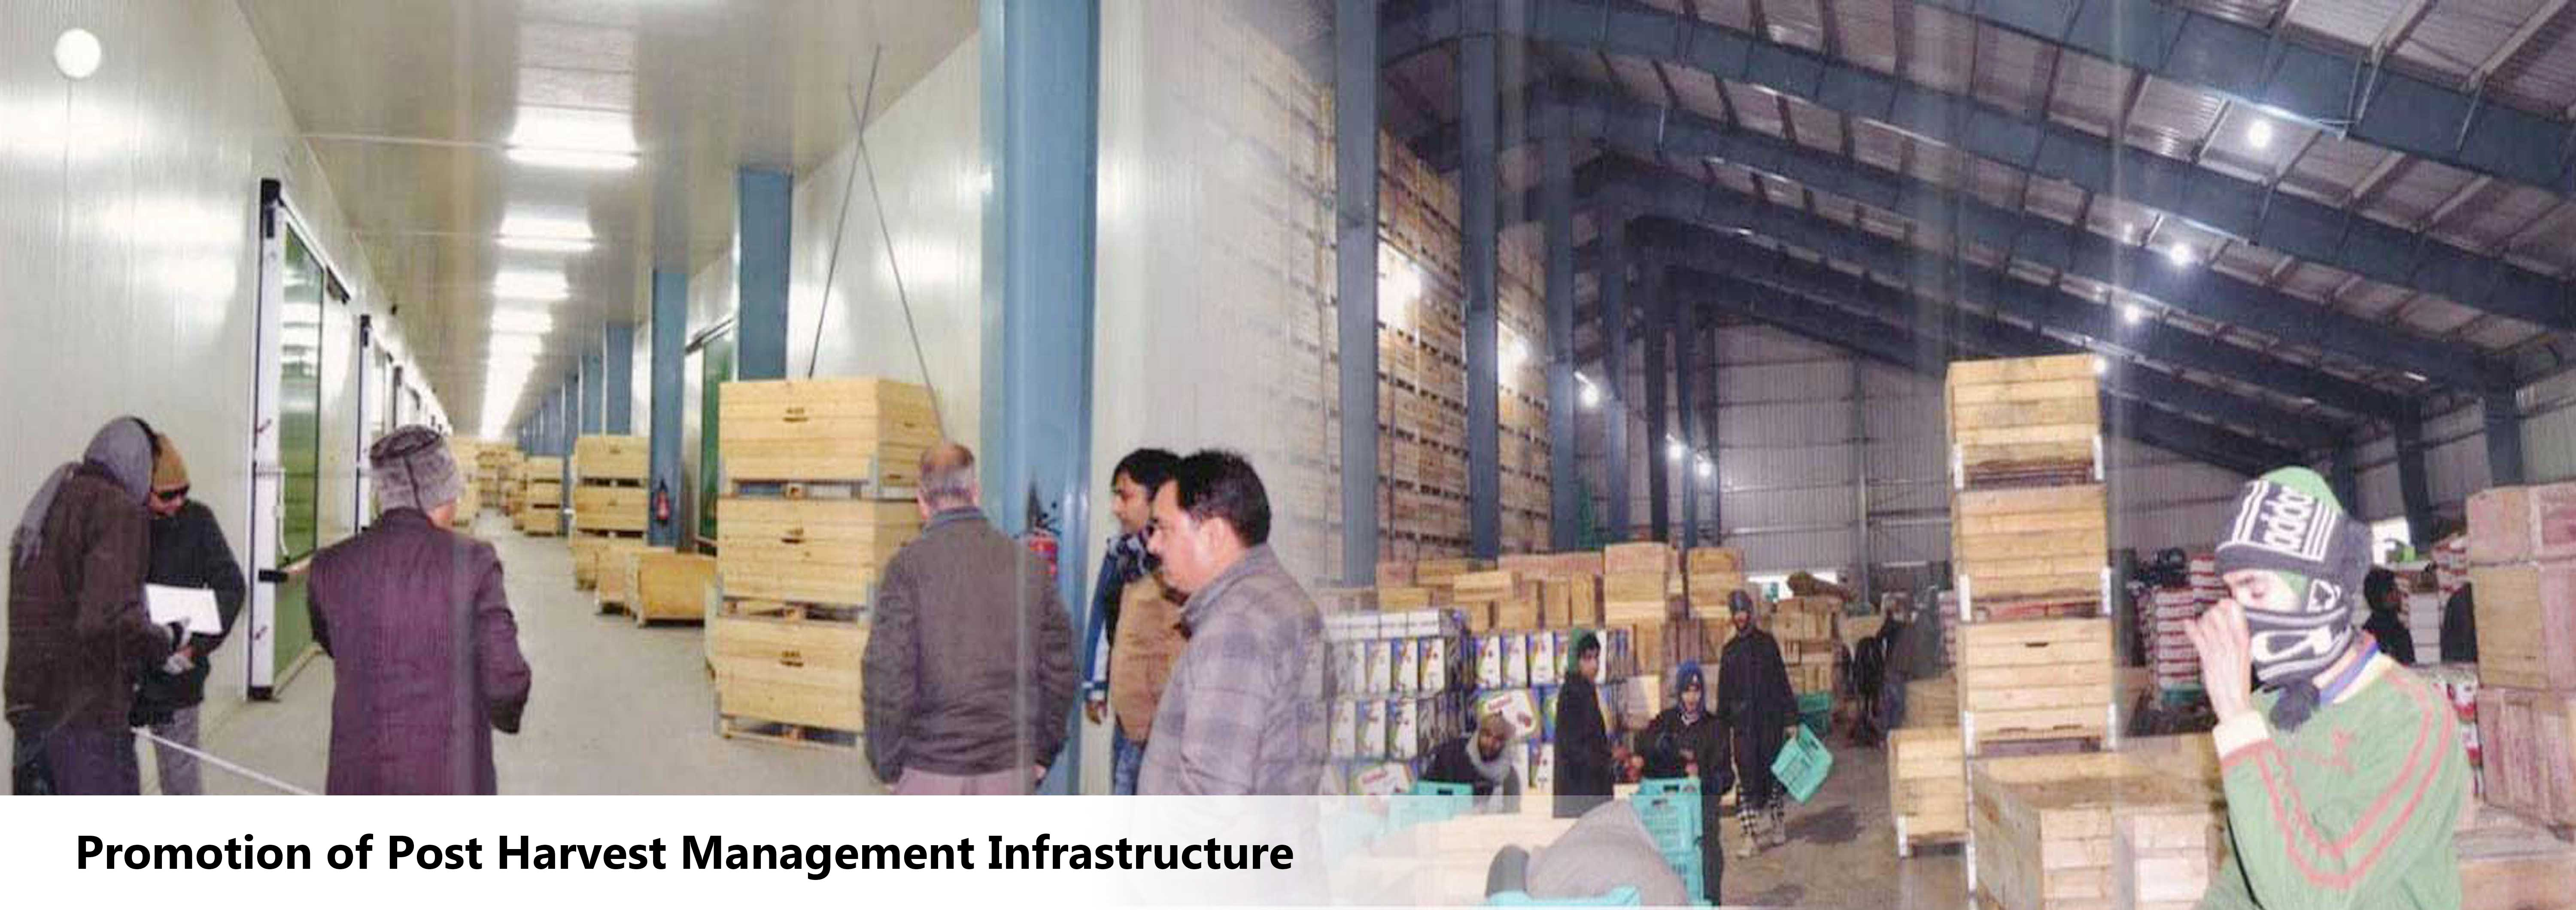 cold storage business plan ppt india